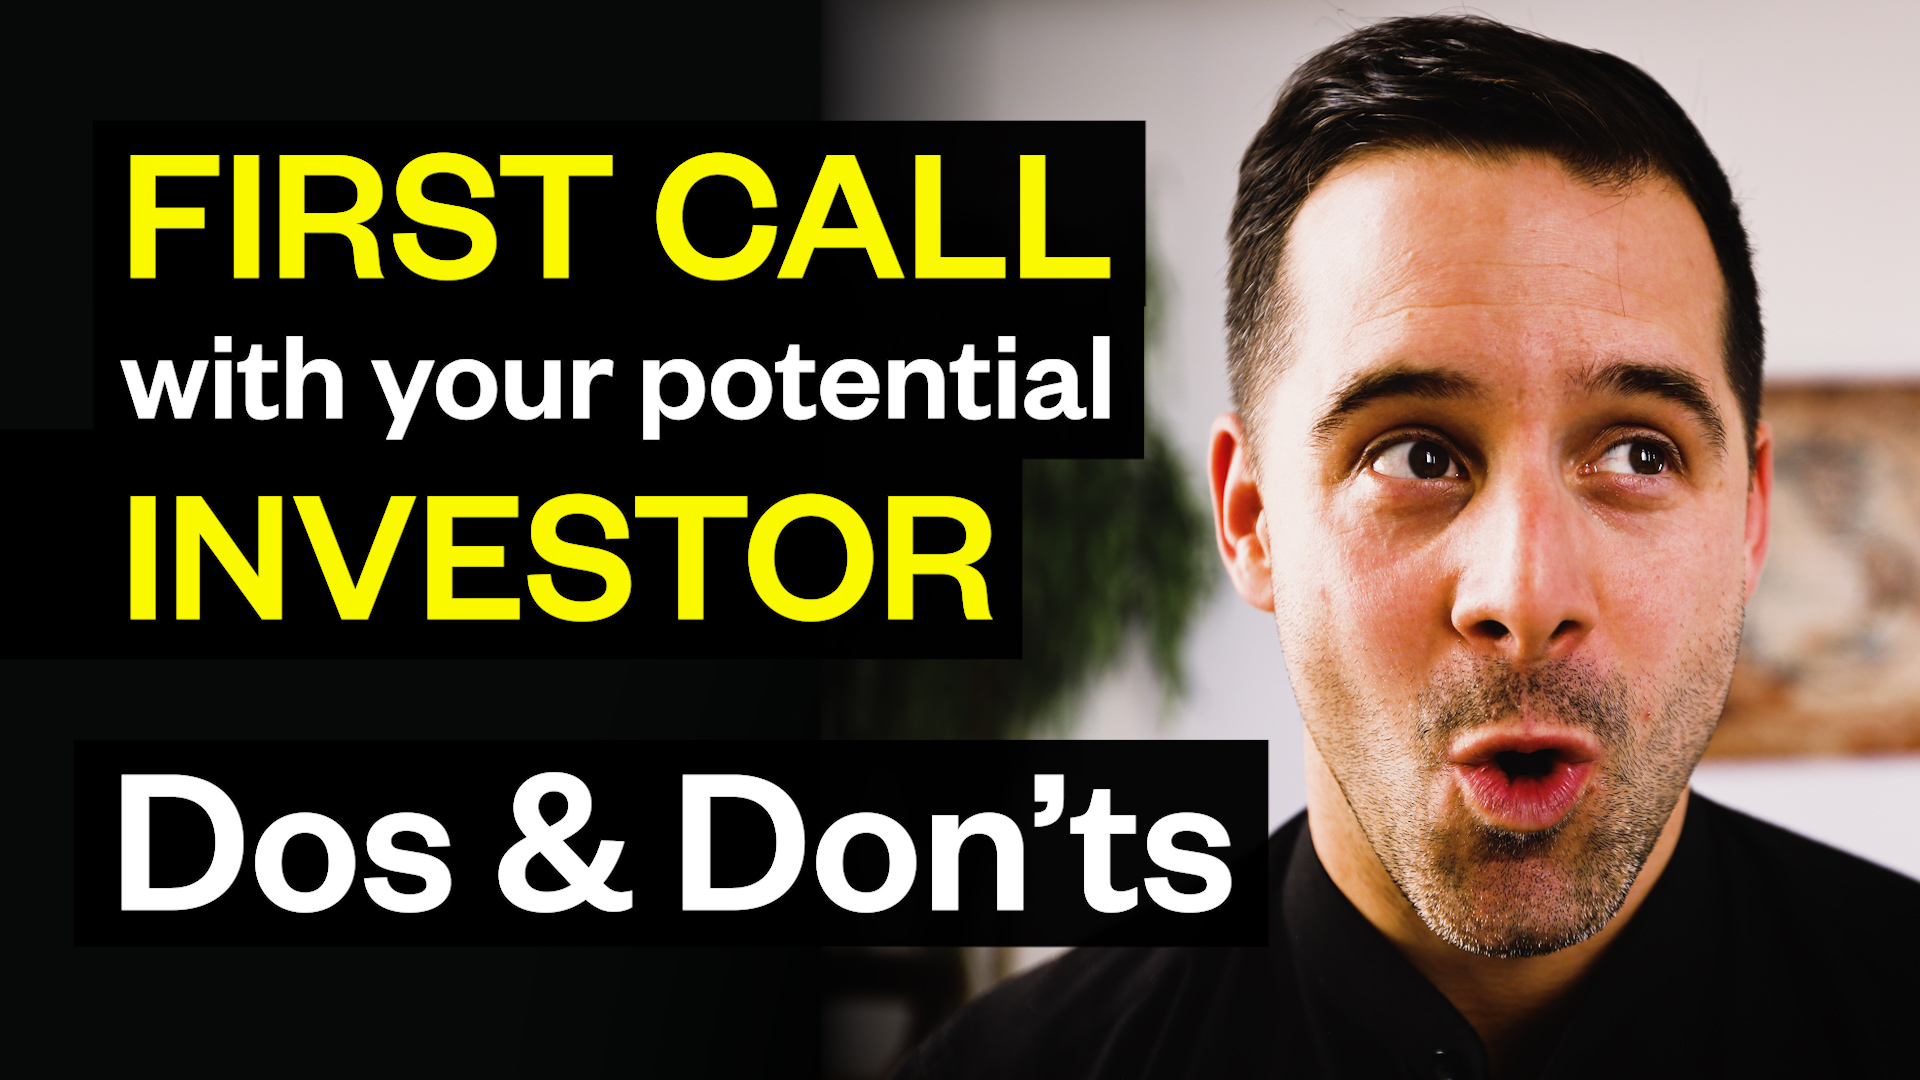 Dos and don'ts for the first call with your potential investor